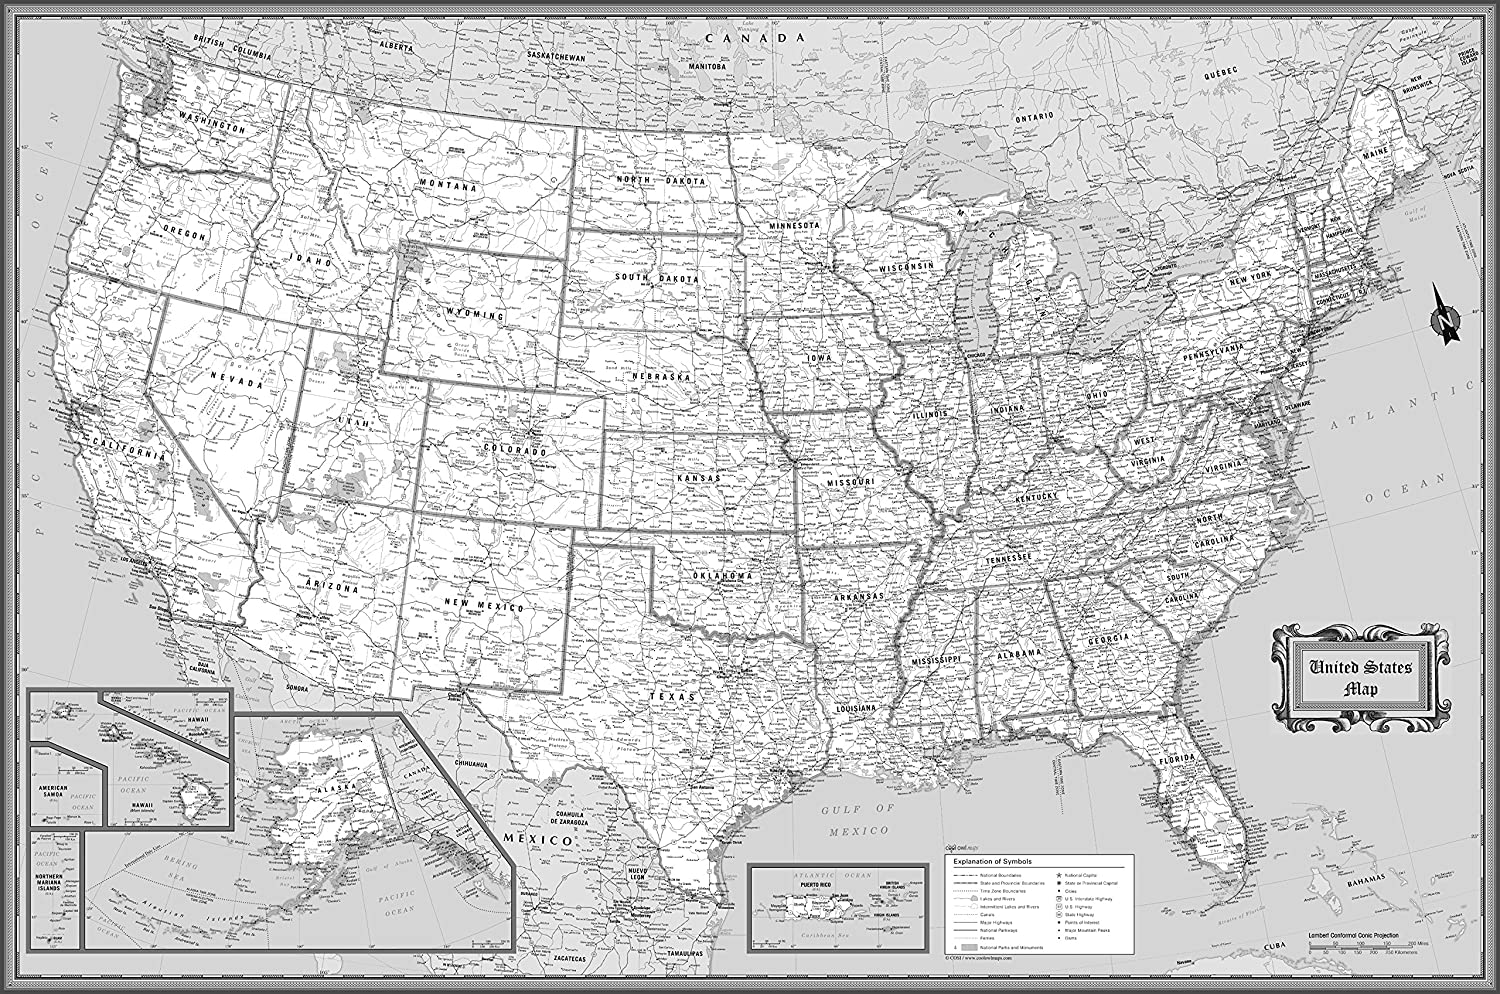 Us Map With States Black And White.Amazon Com Coolowlmaps United States Wall Map Black White Design